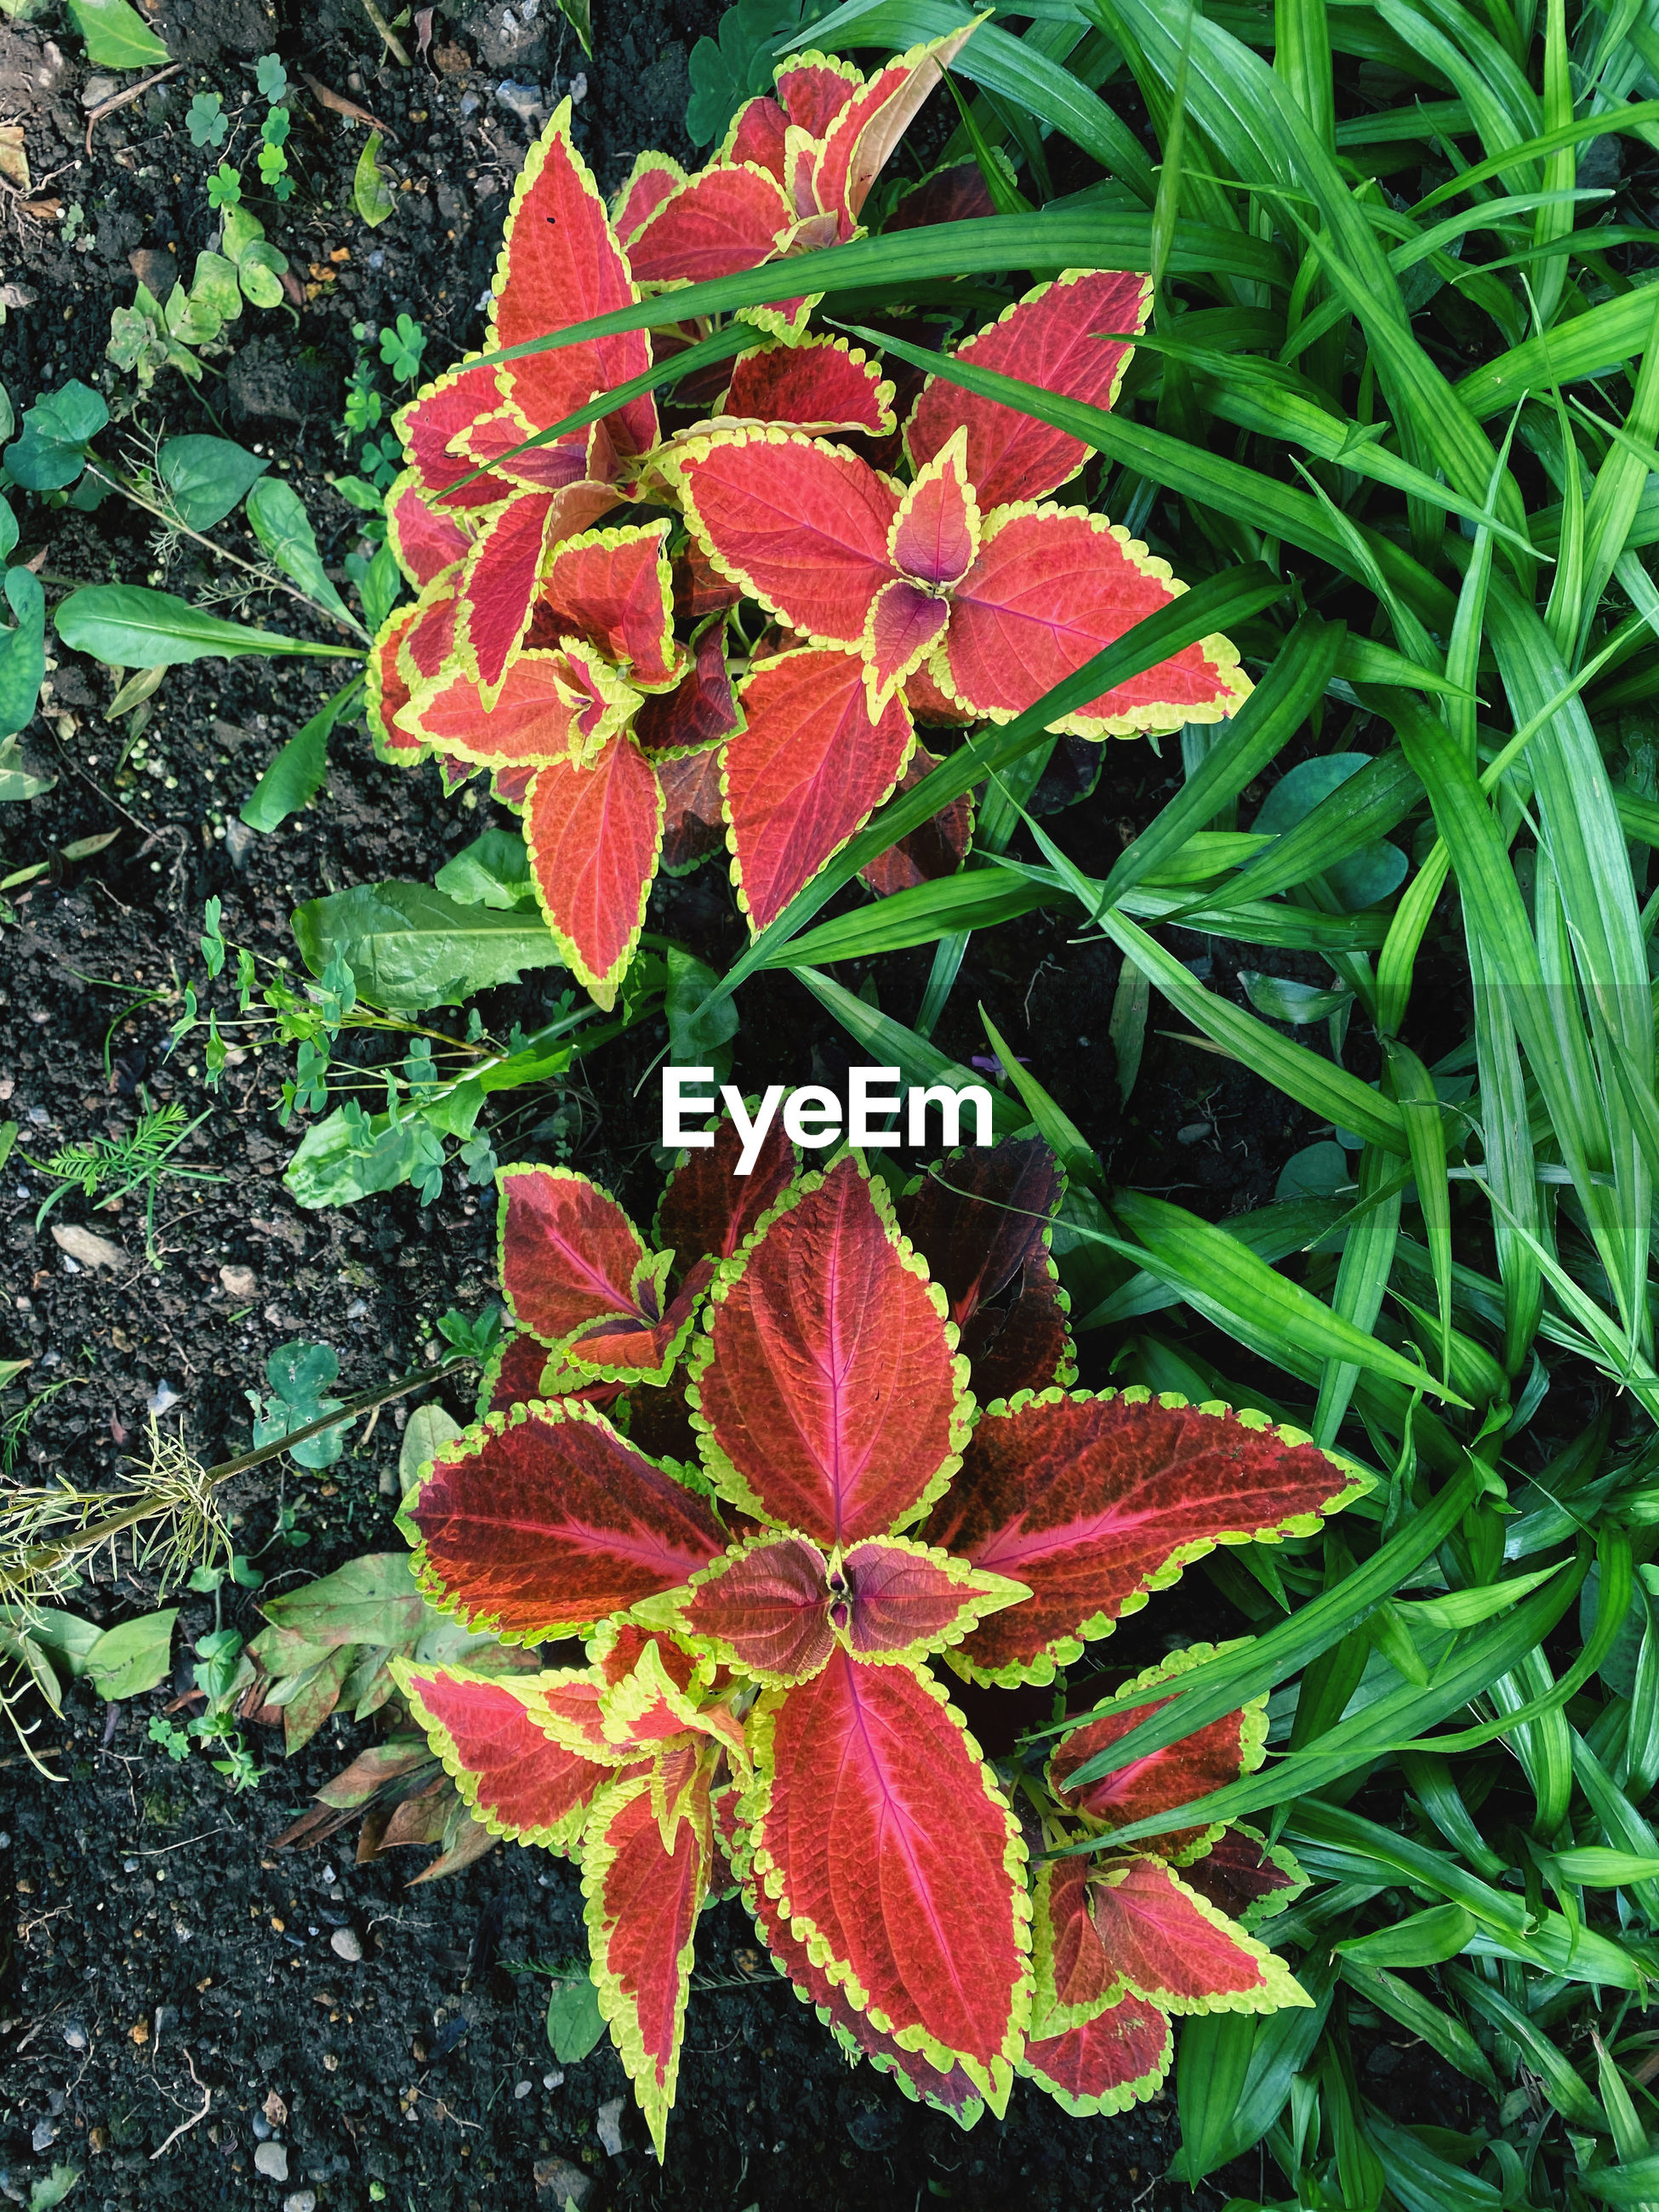 HIGH ANGLE VIEW OF RED FLOWERING PLANT ON LEAF